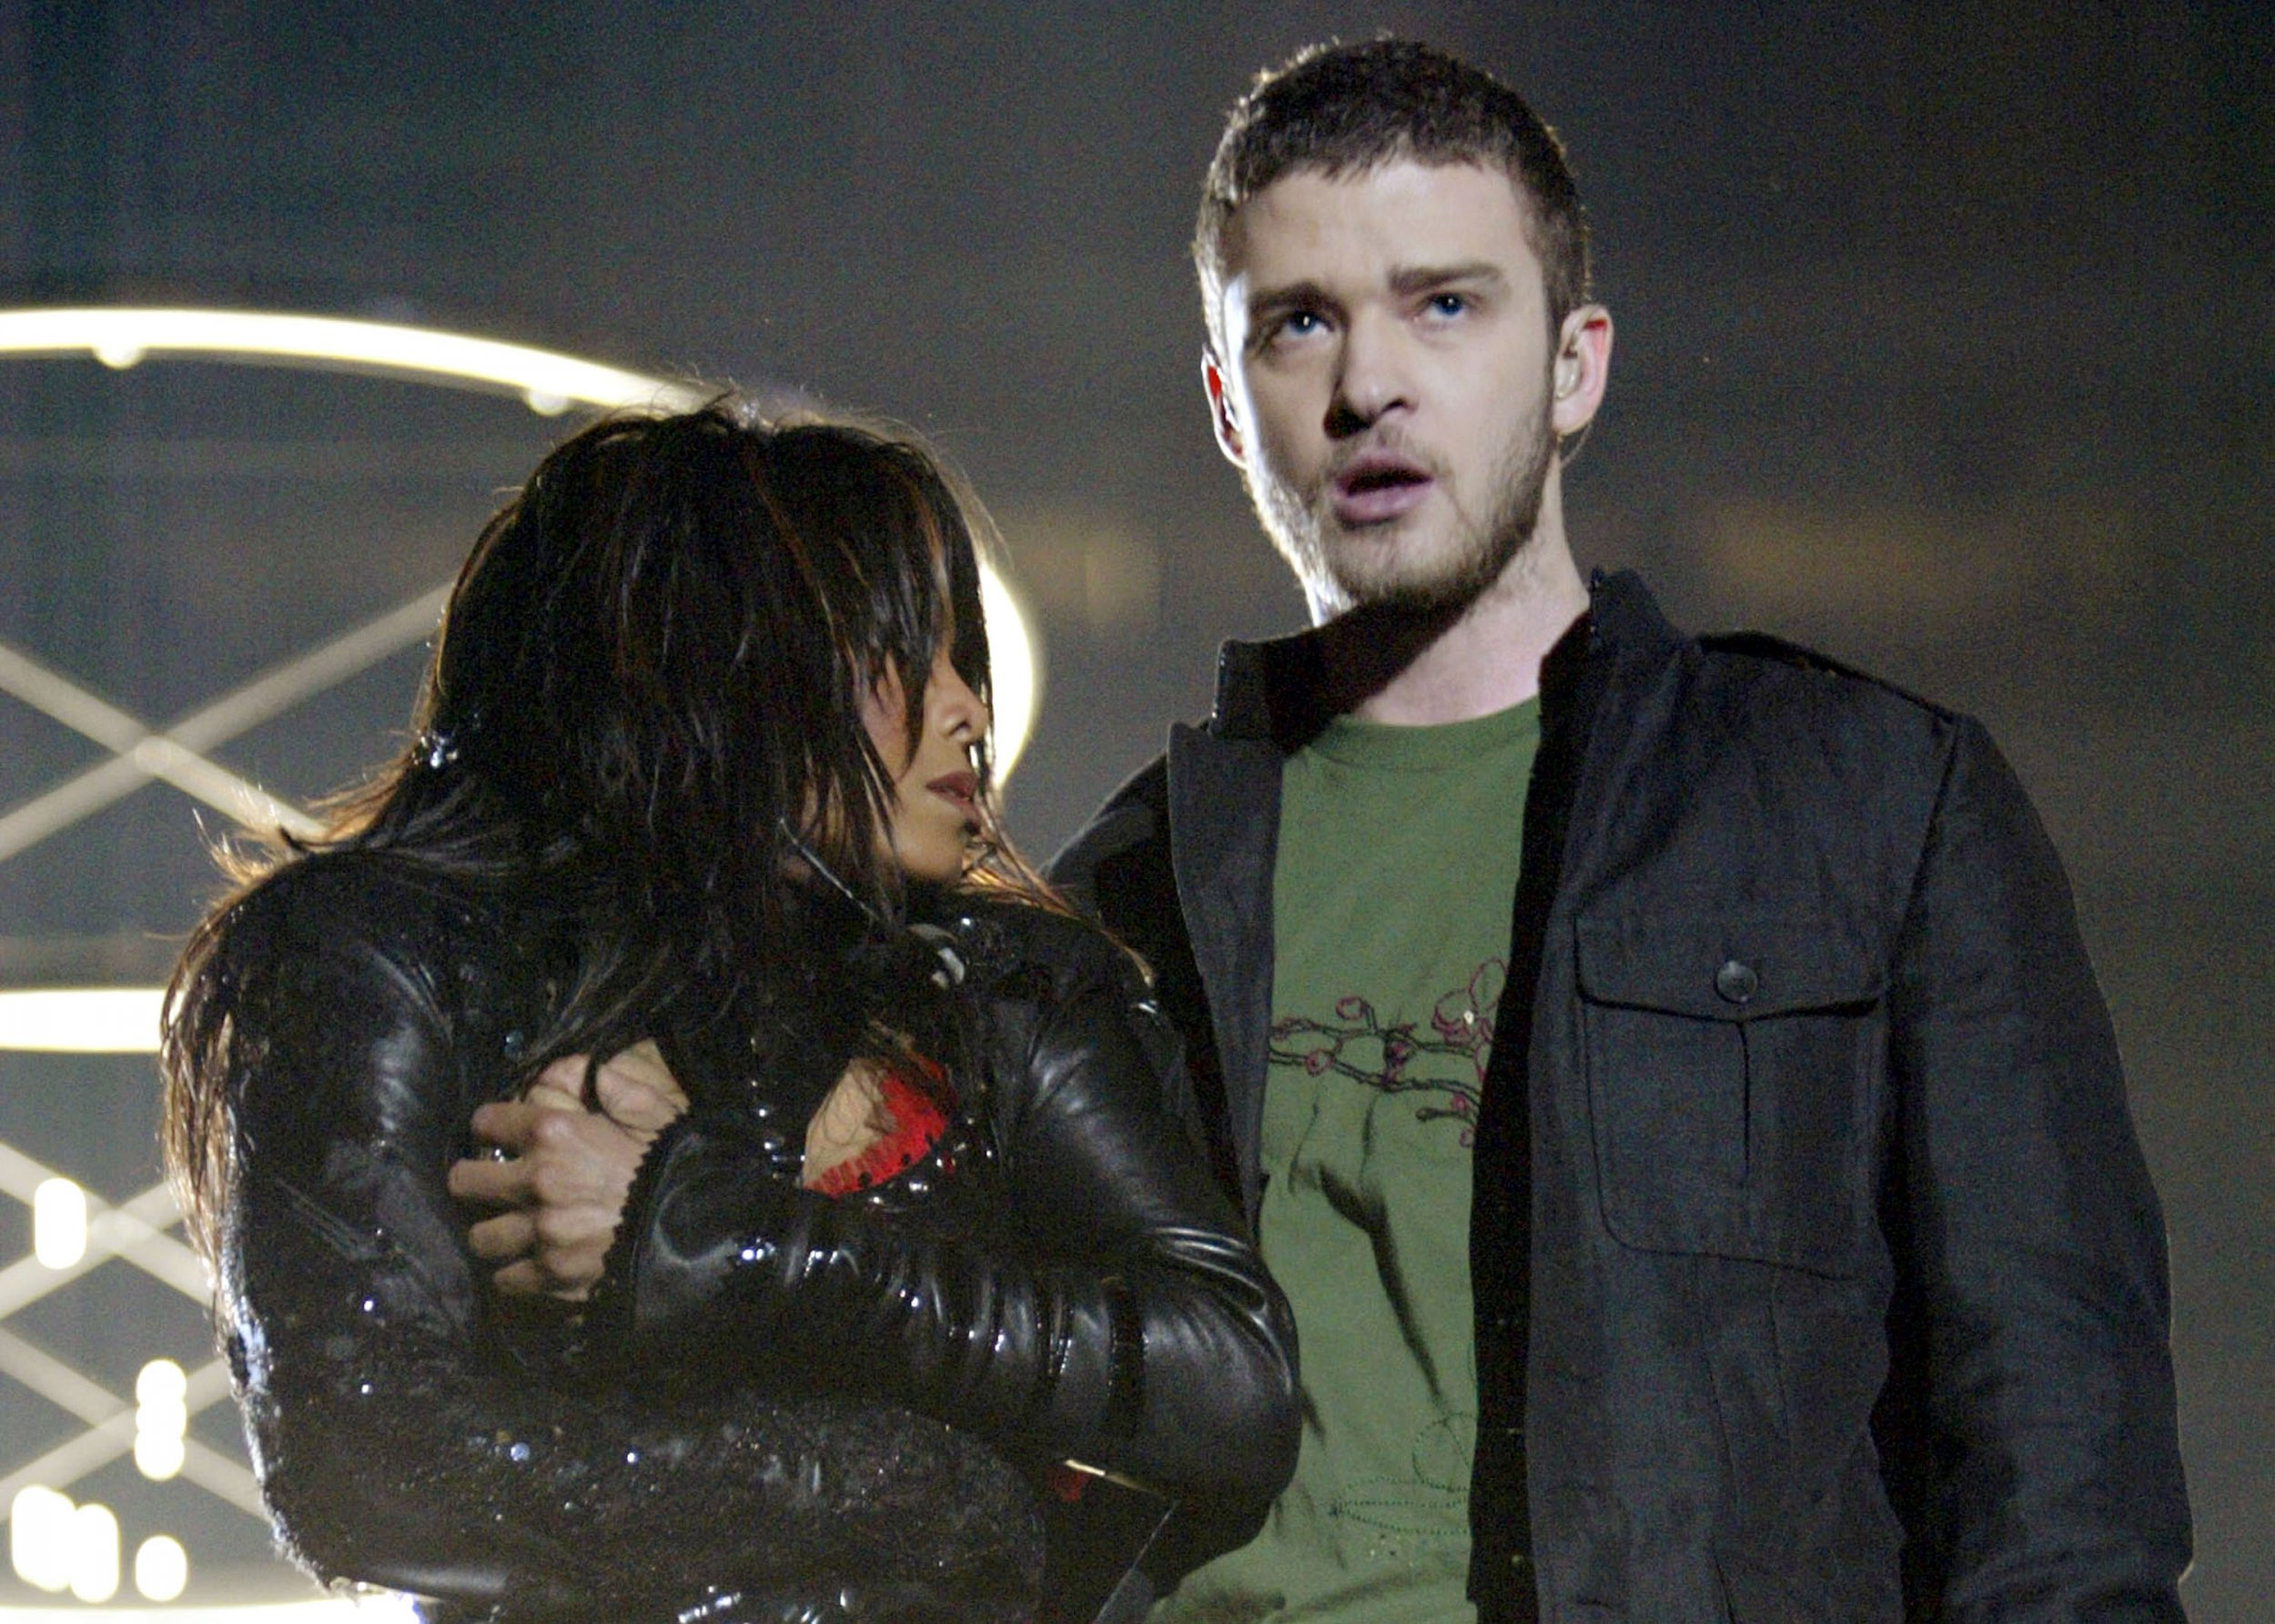 Janet Jackson and Justin Timberlake at 2004 Super Bowl